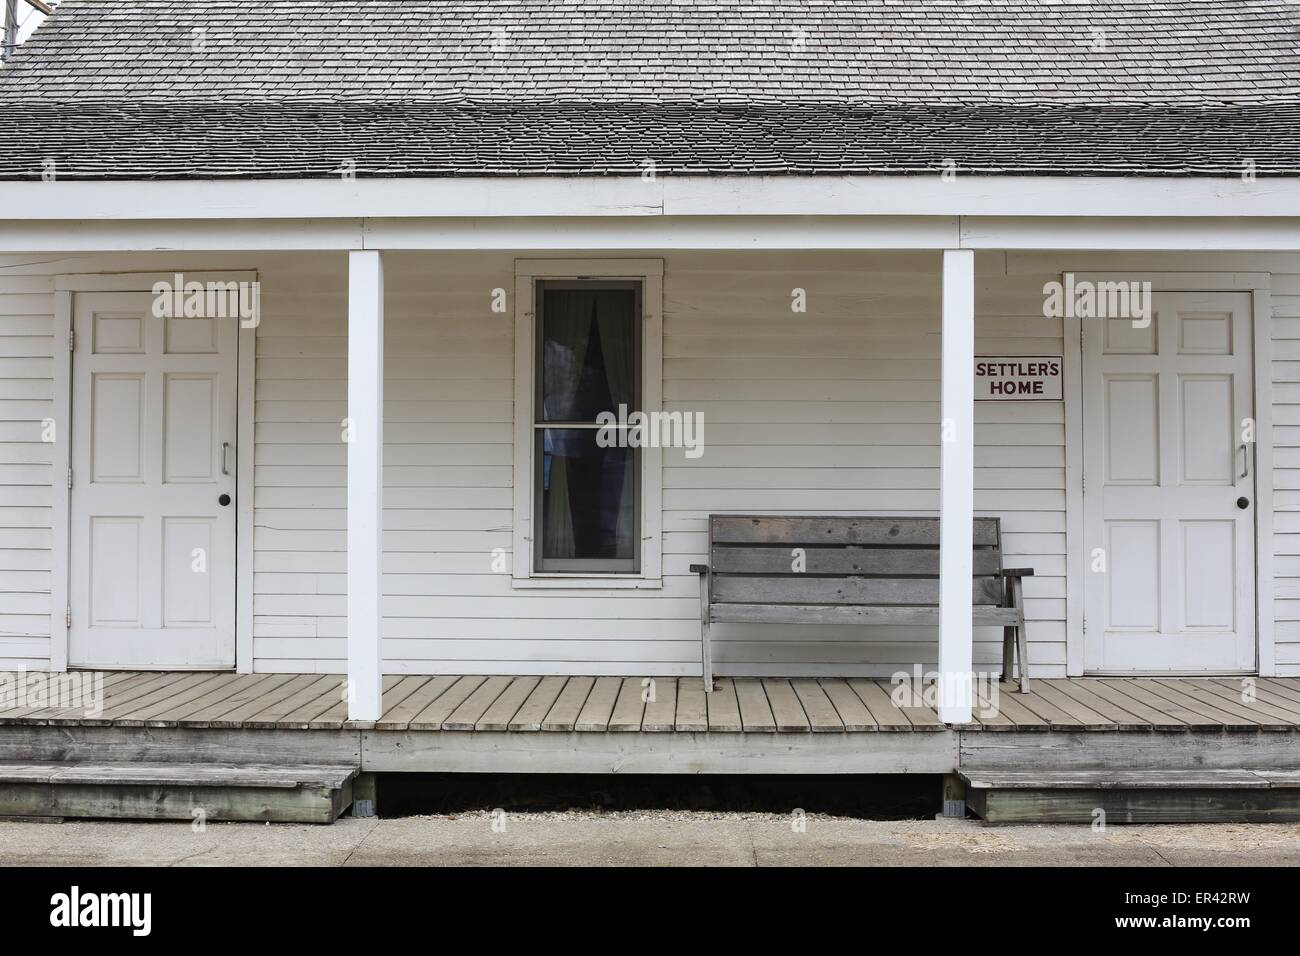 A settler's home at the Laura Ingalls Wilder museum in Walnut Grove, Minnesota. - Stock Image